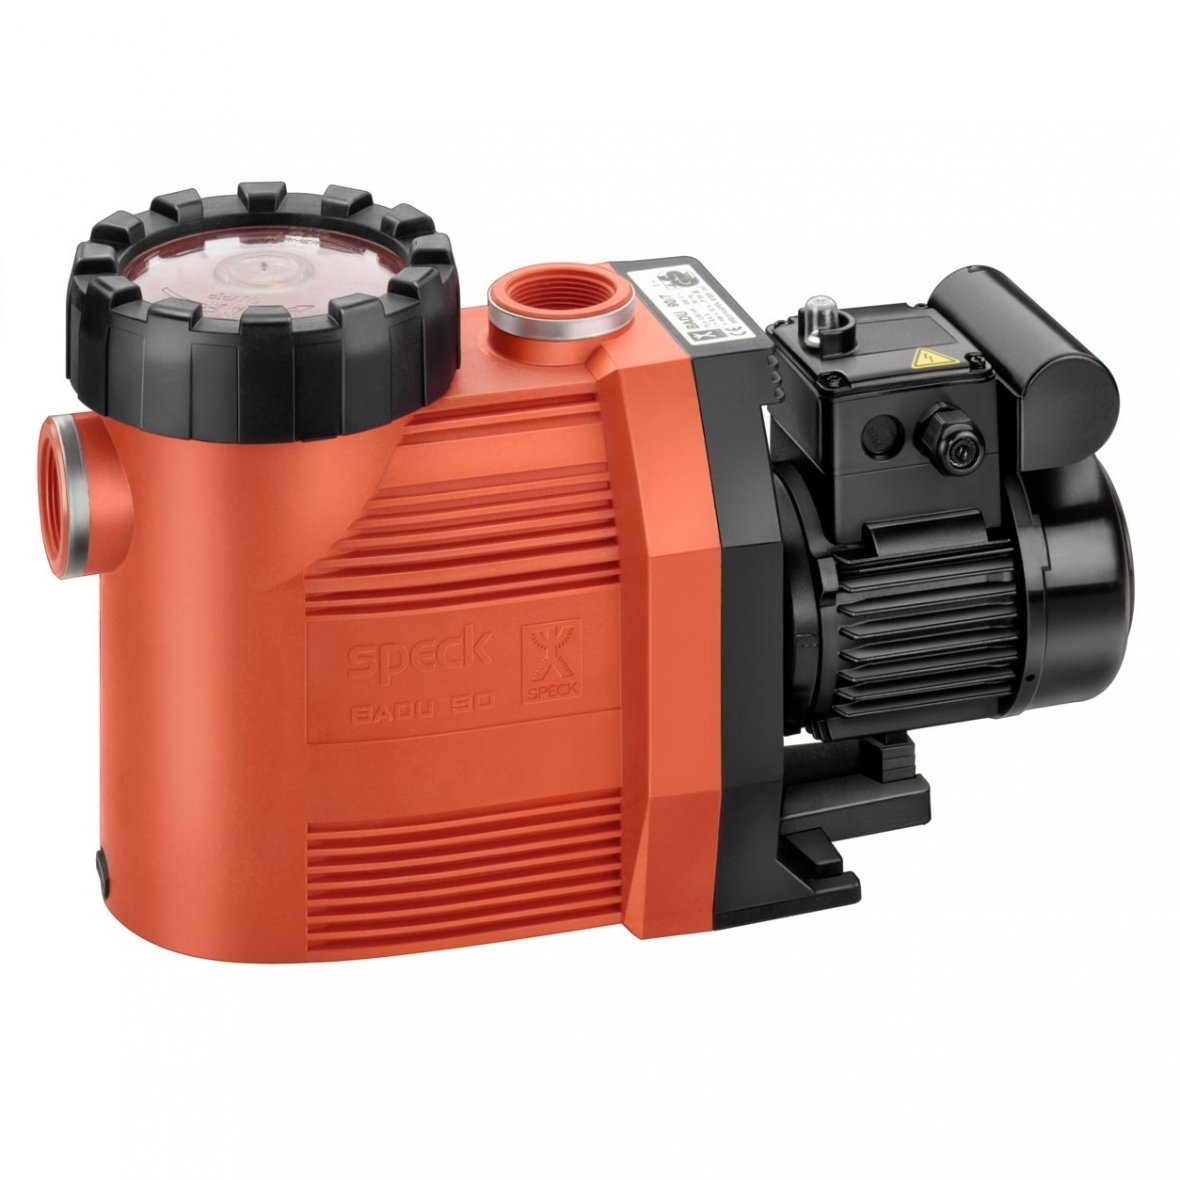 Badu 90/11 three-phase pool pump